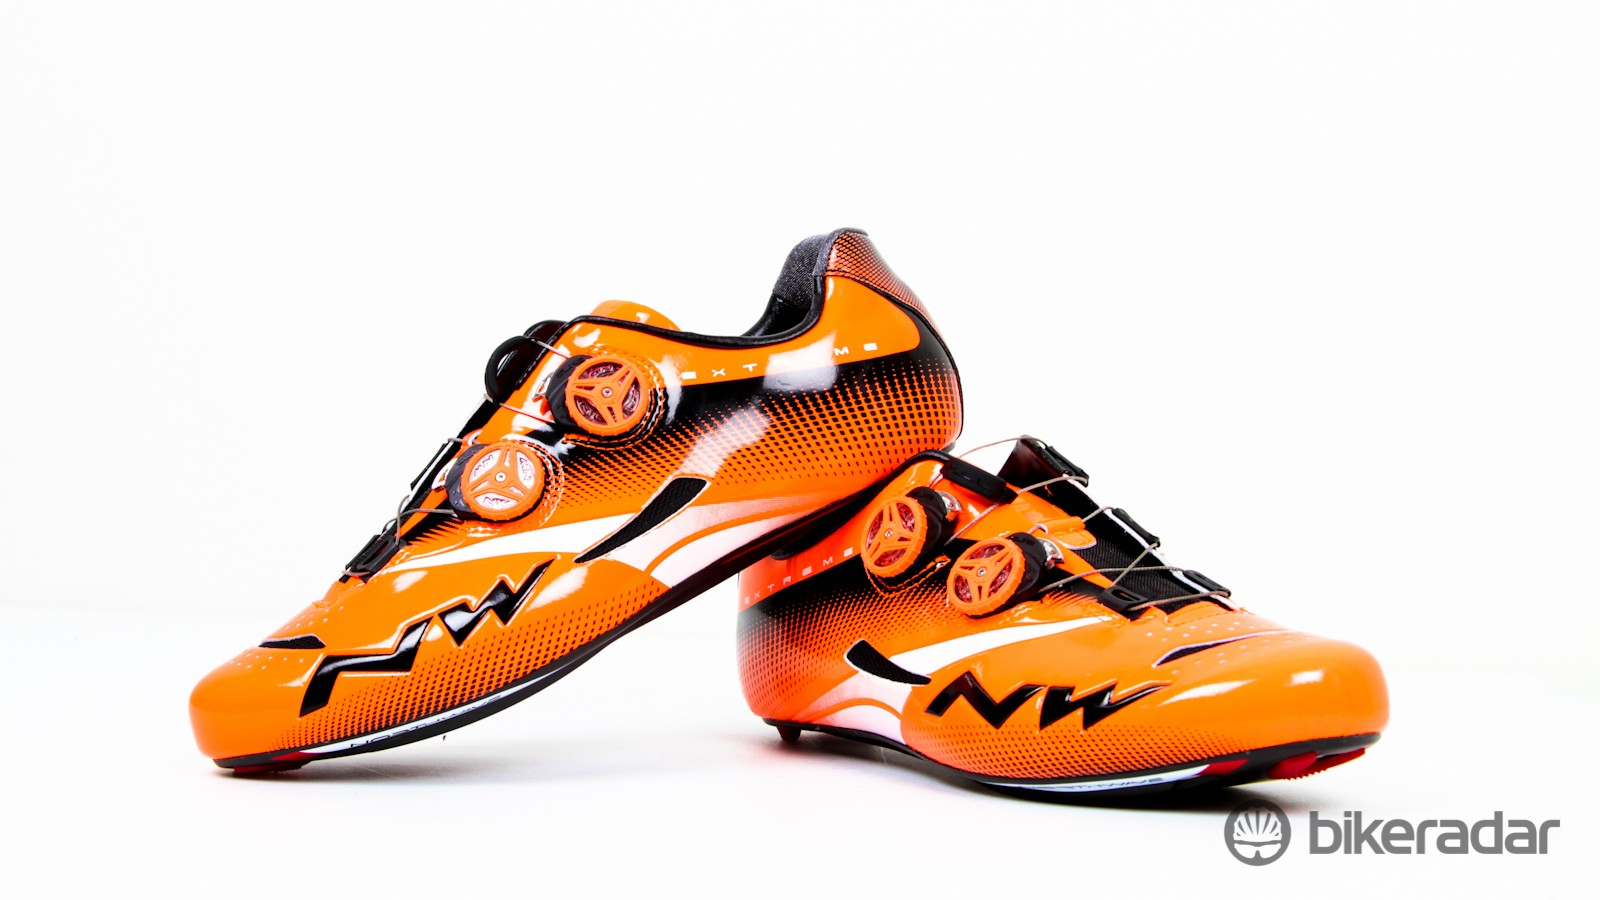 Northwave's Extreme Tech Plus are some loud kicks